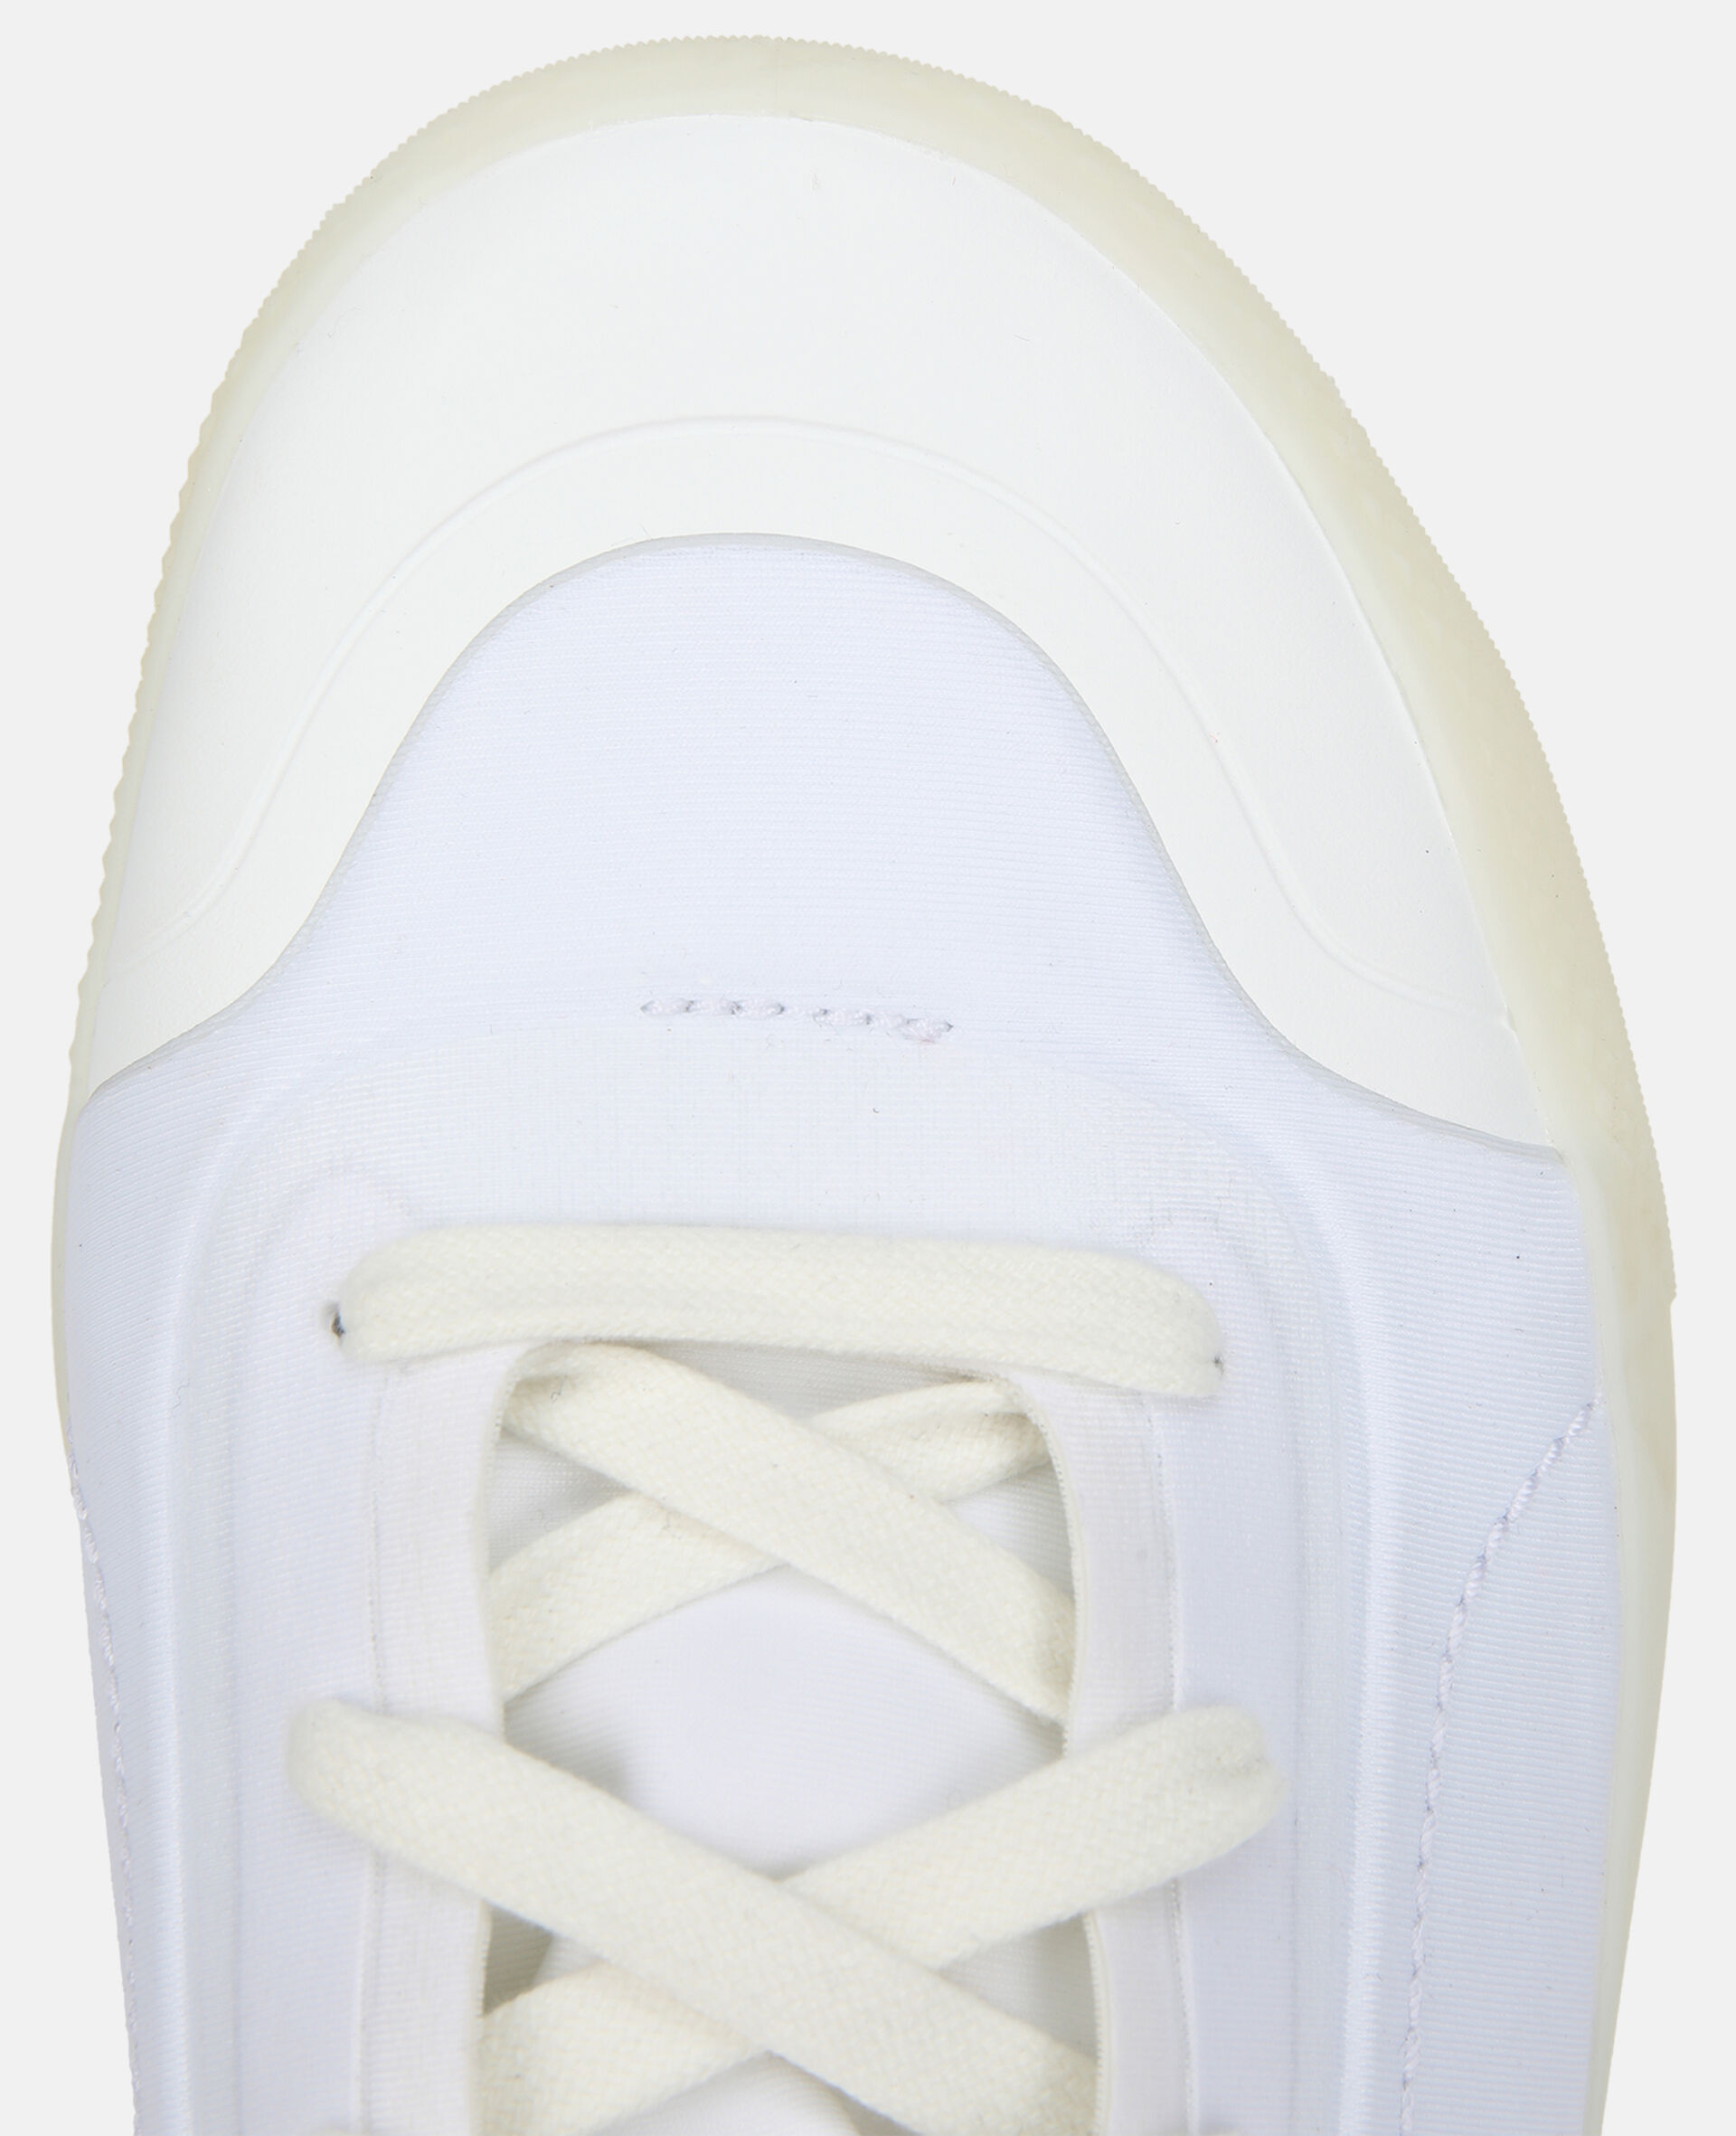 White Boost Treino Sneakers-White-large image number 5